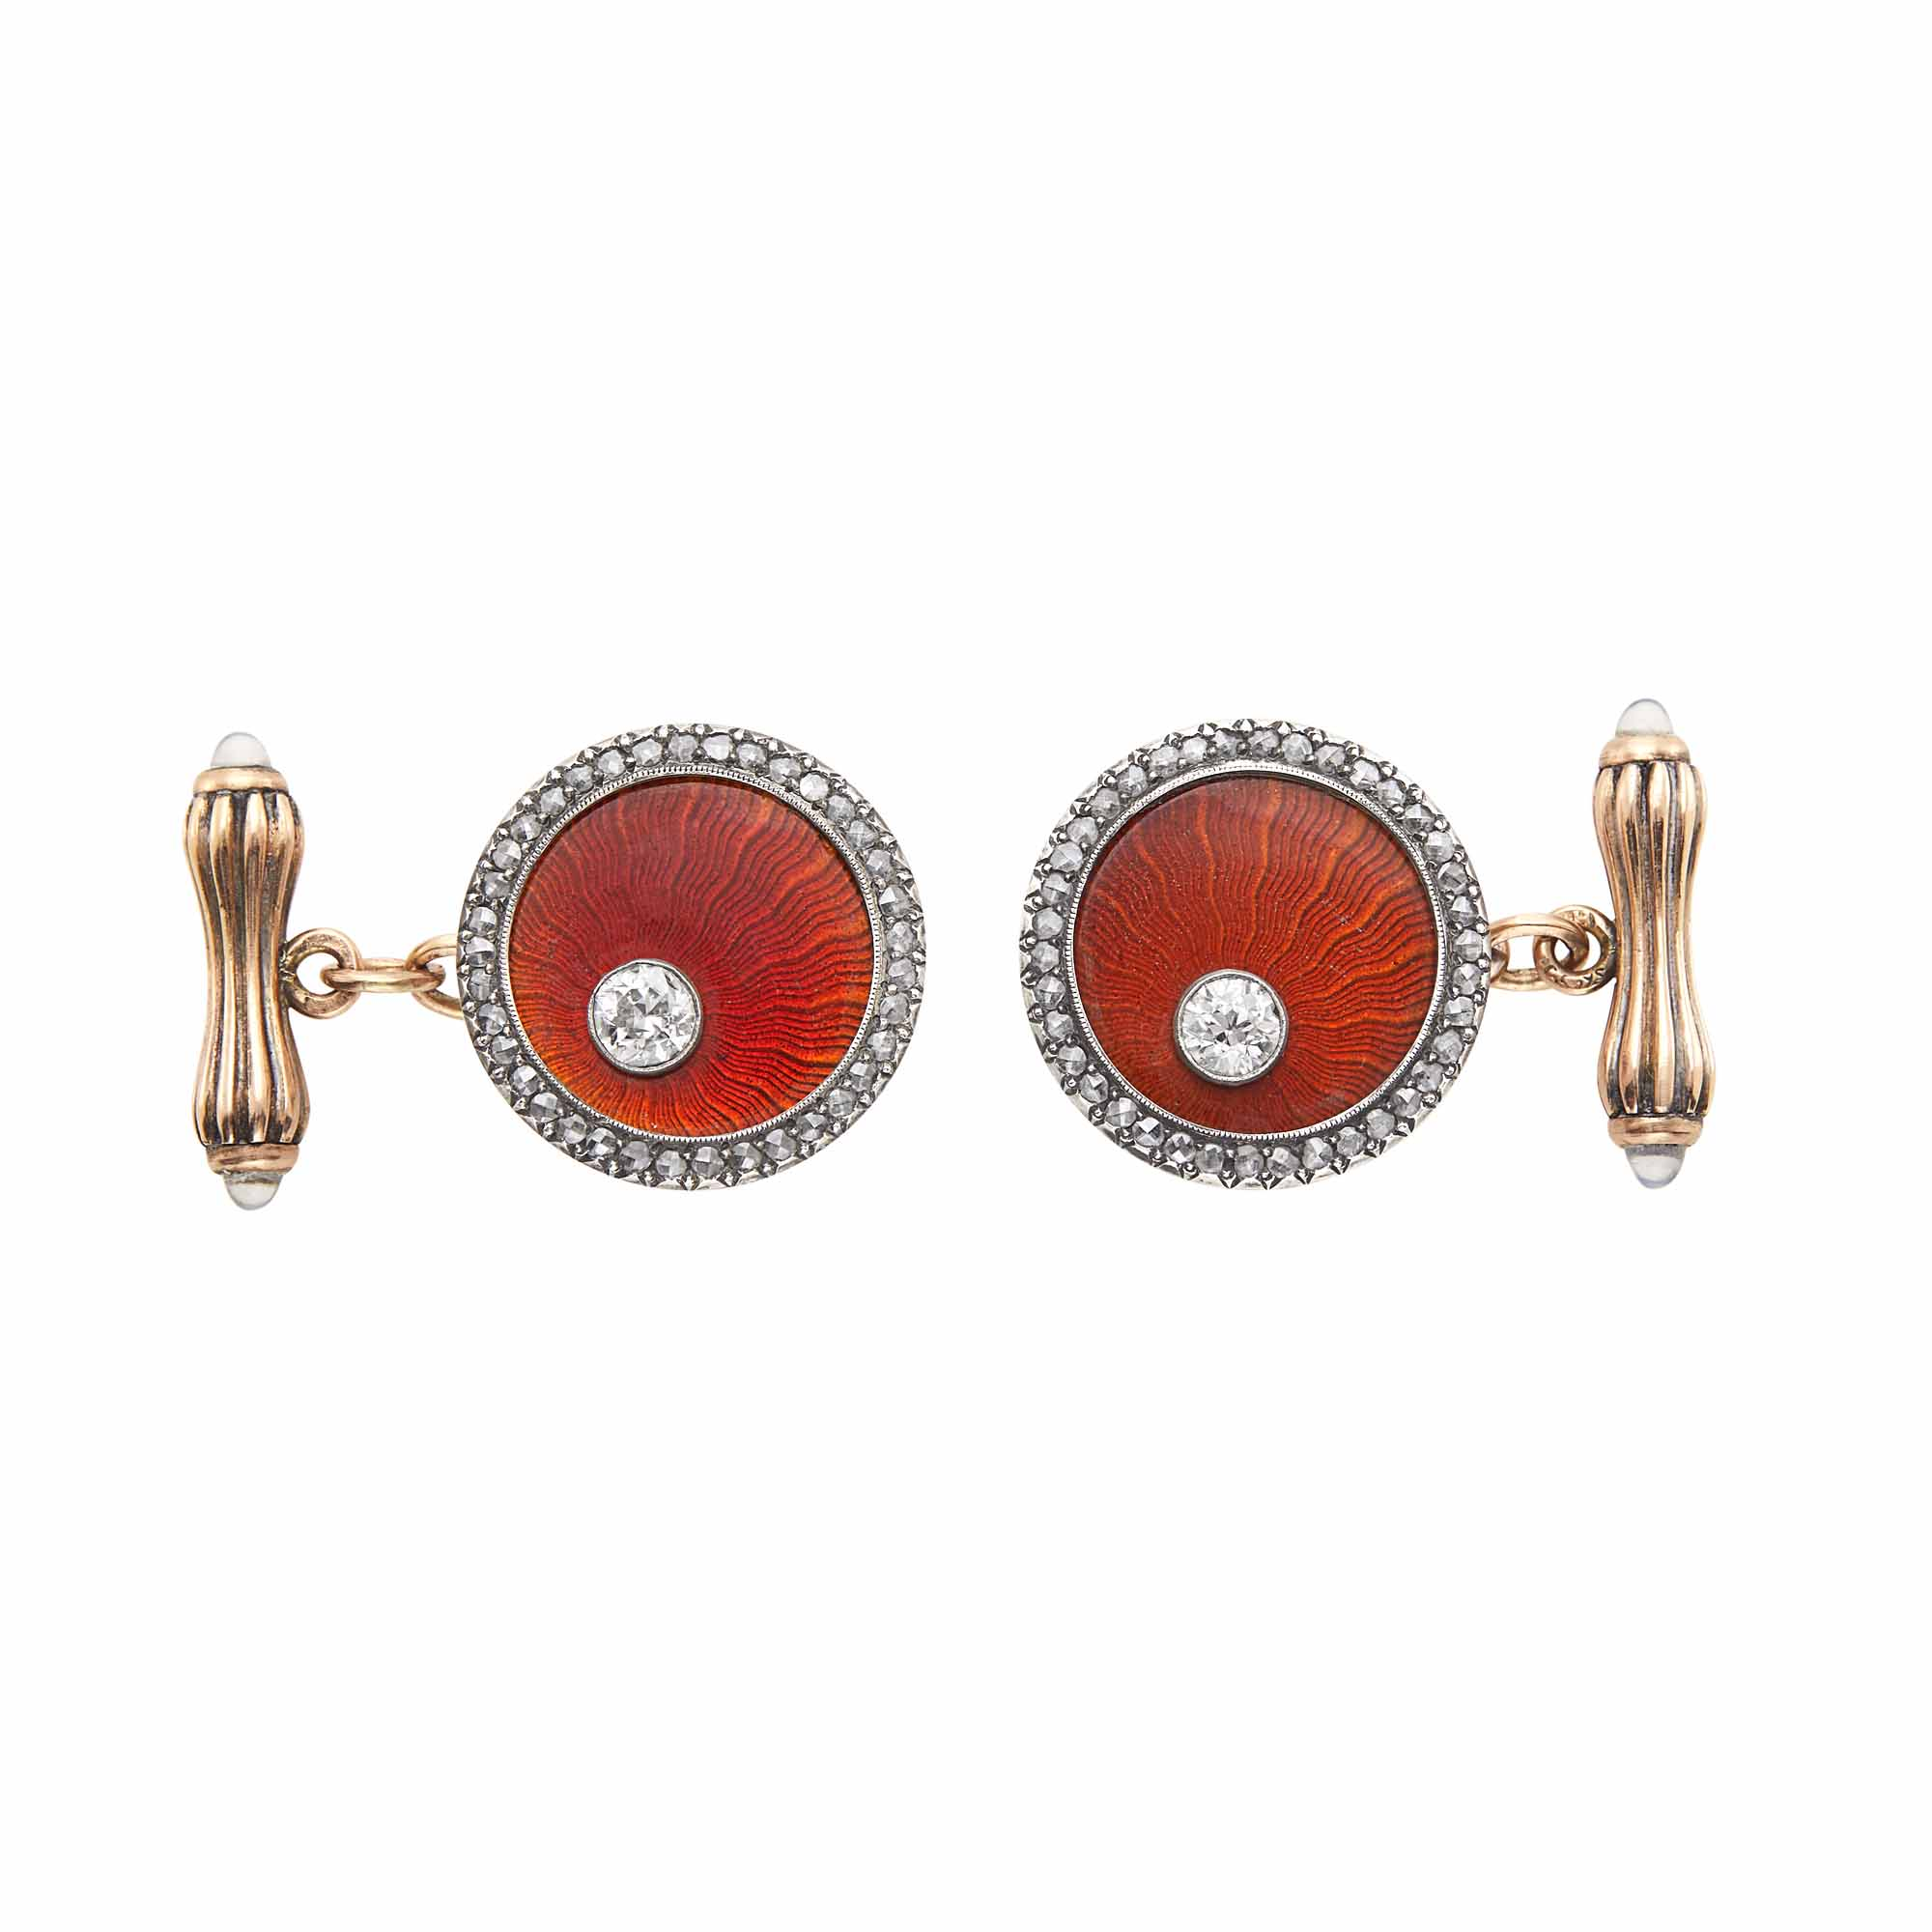 Lot image - Pair of Fabergé Jeweled Silver-Topped Gold and Guilloché Enamel Cufflinks